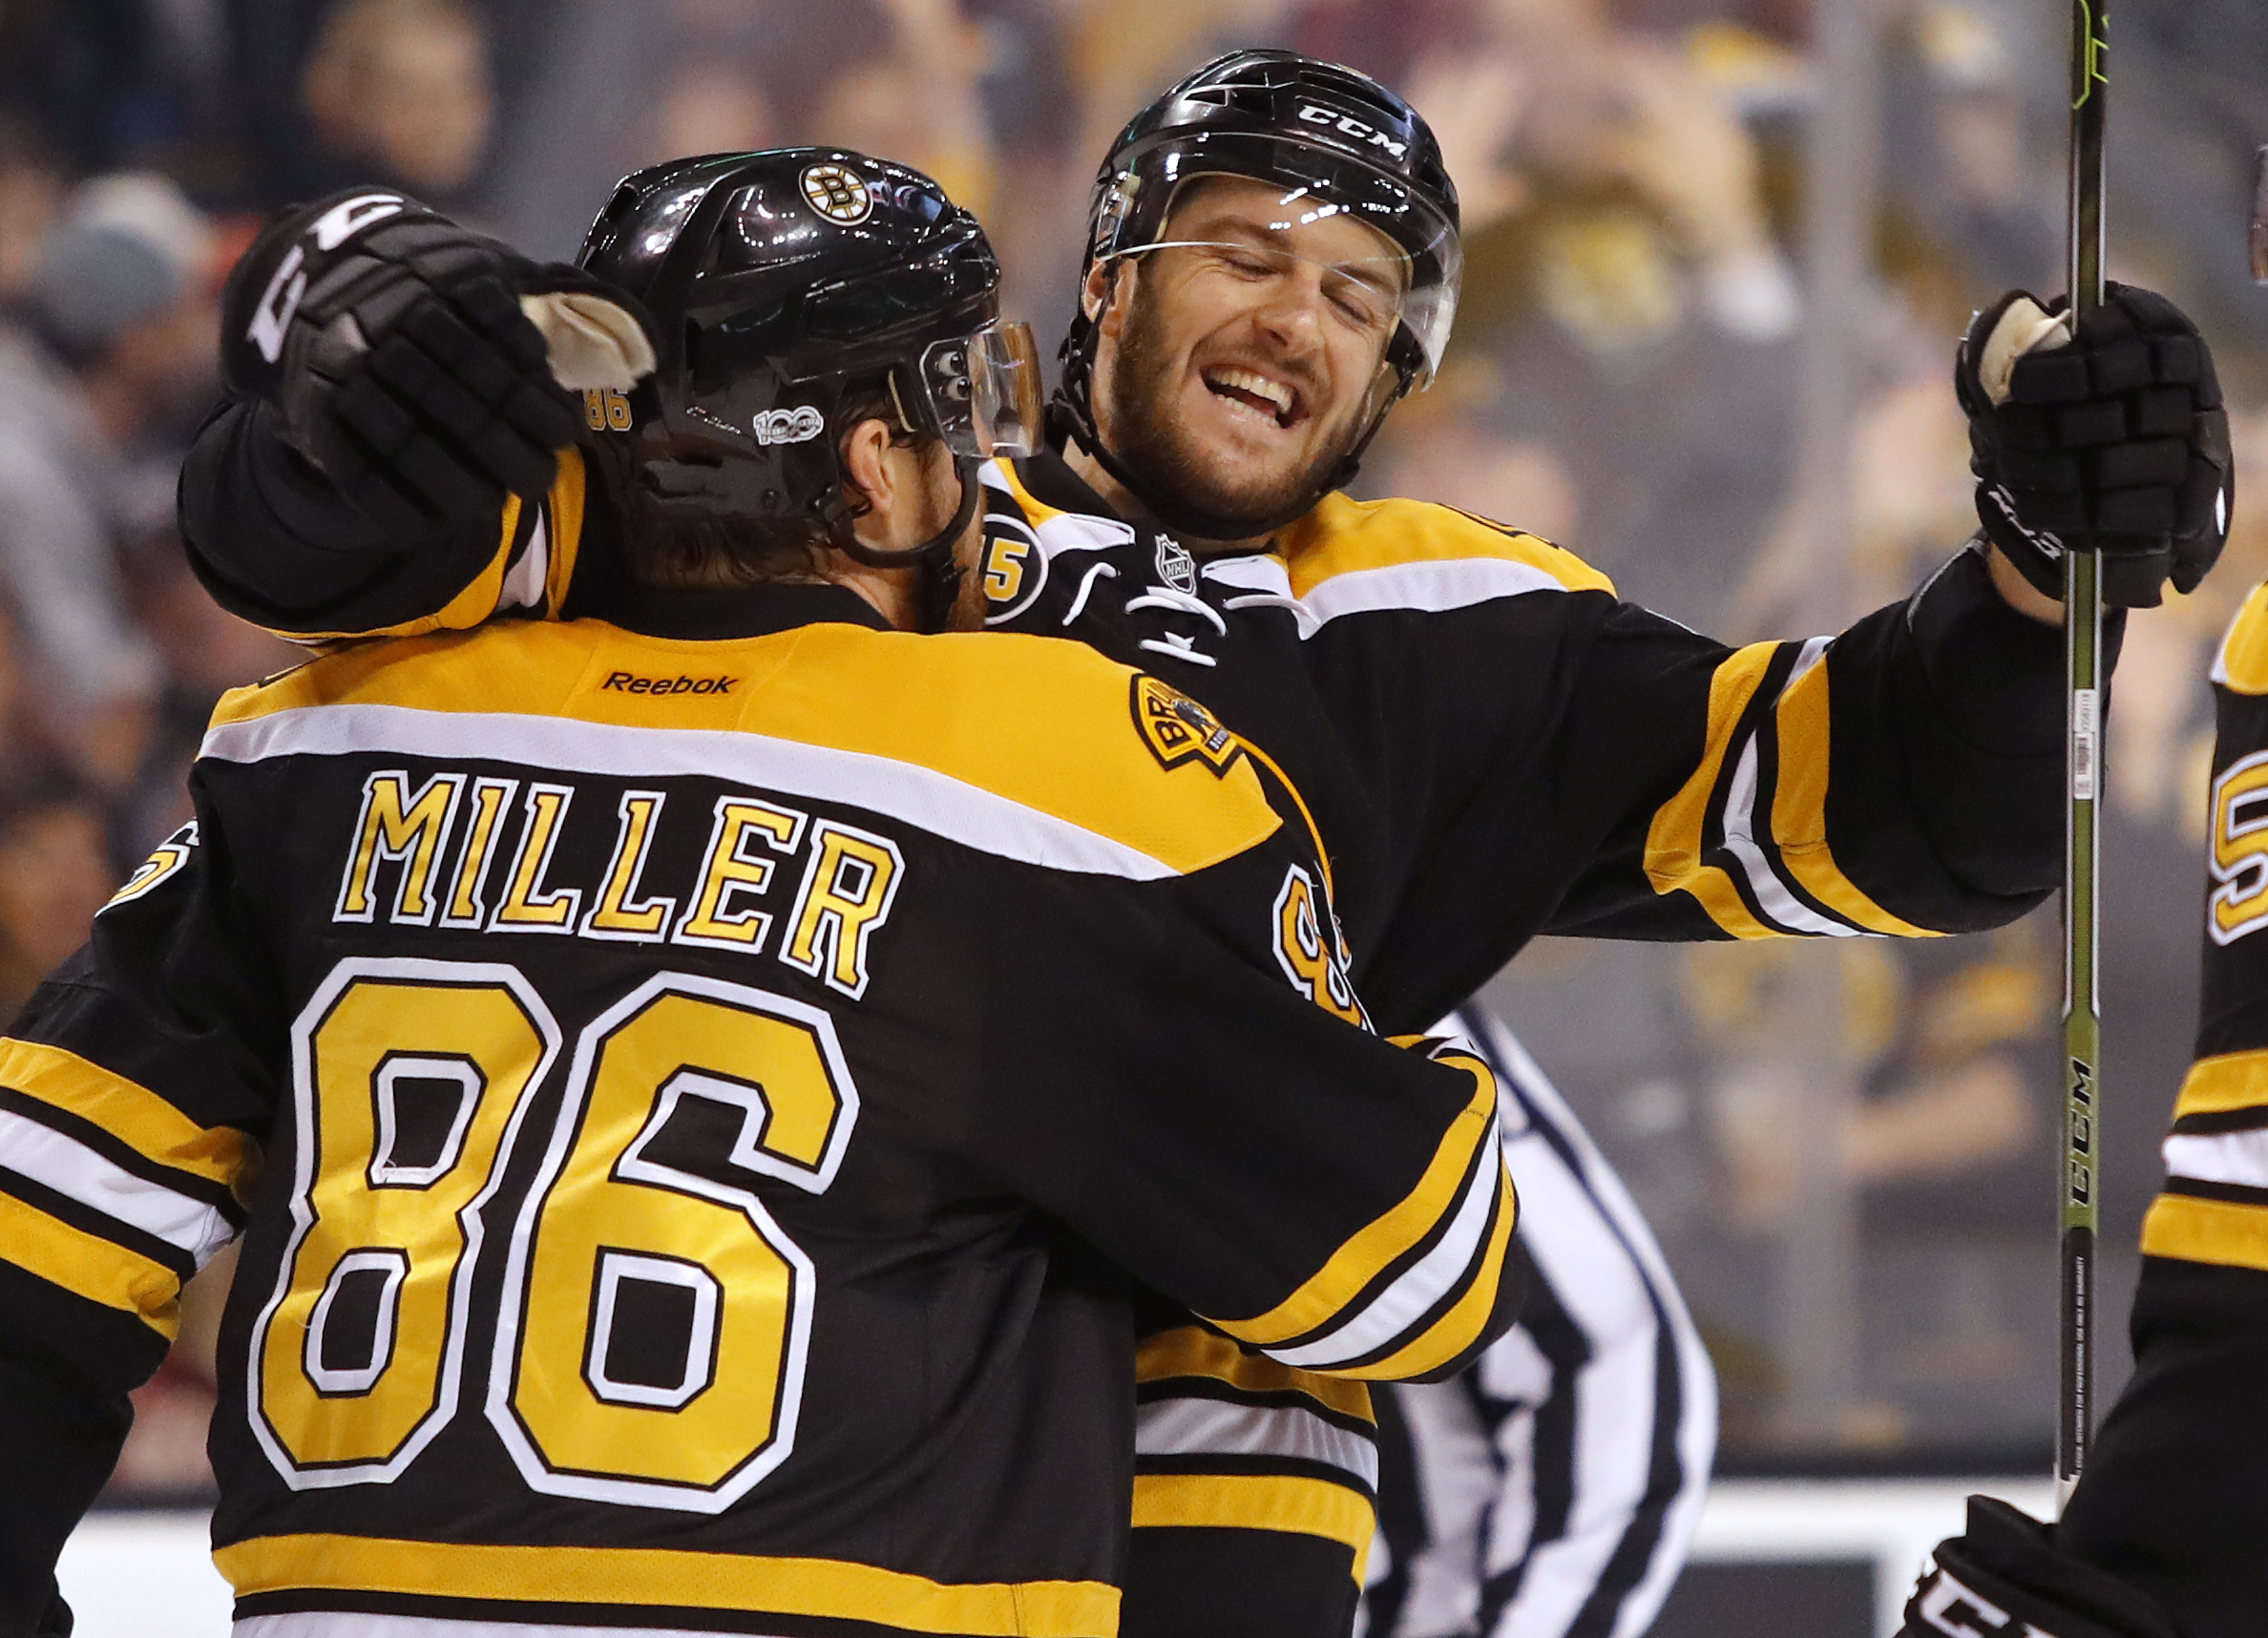 Boston Bruins: Colin Miller Willing To Fight For Team